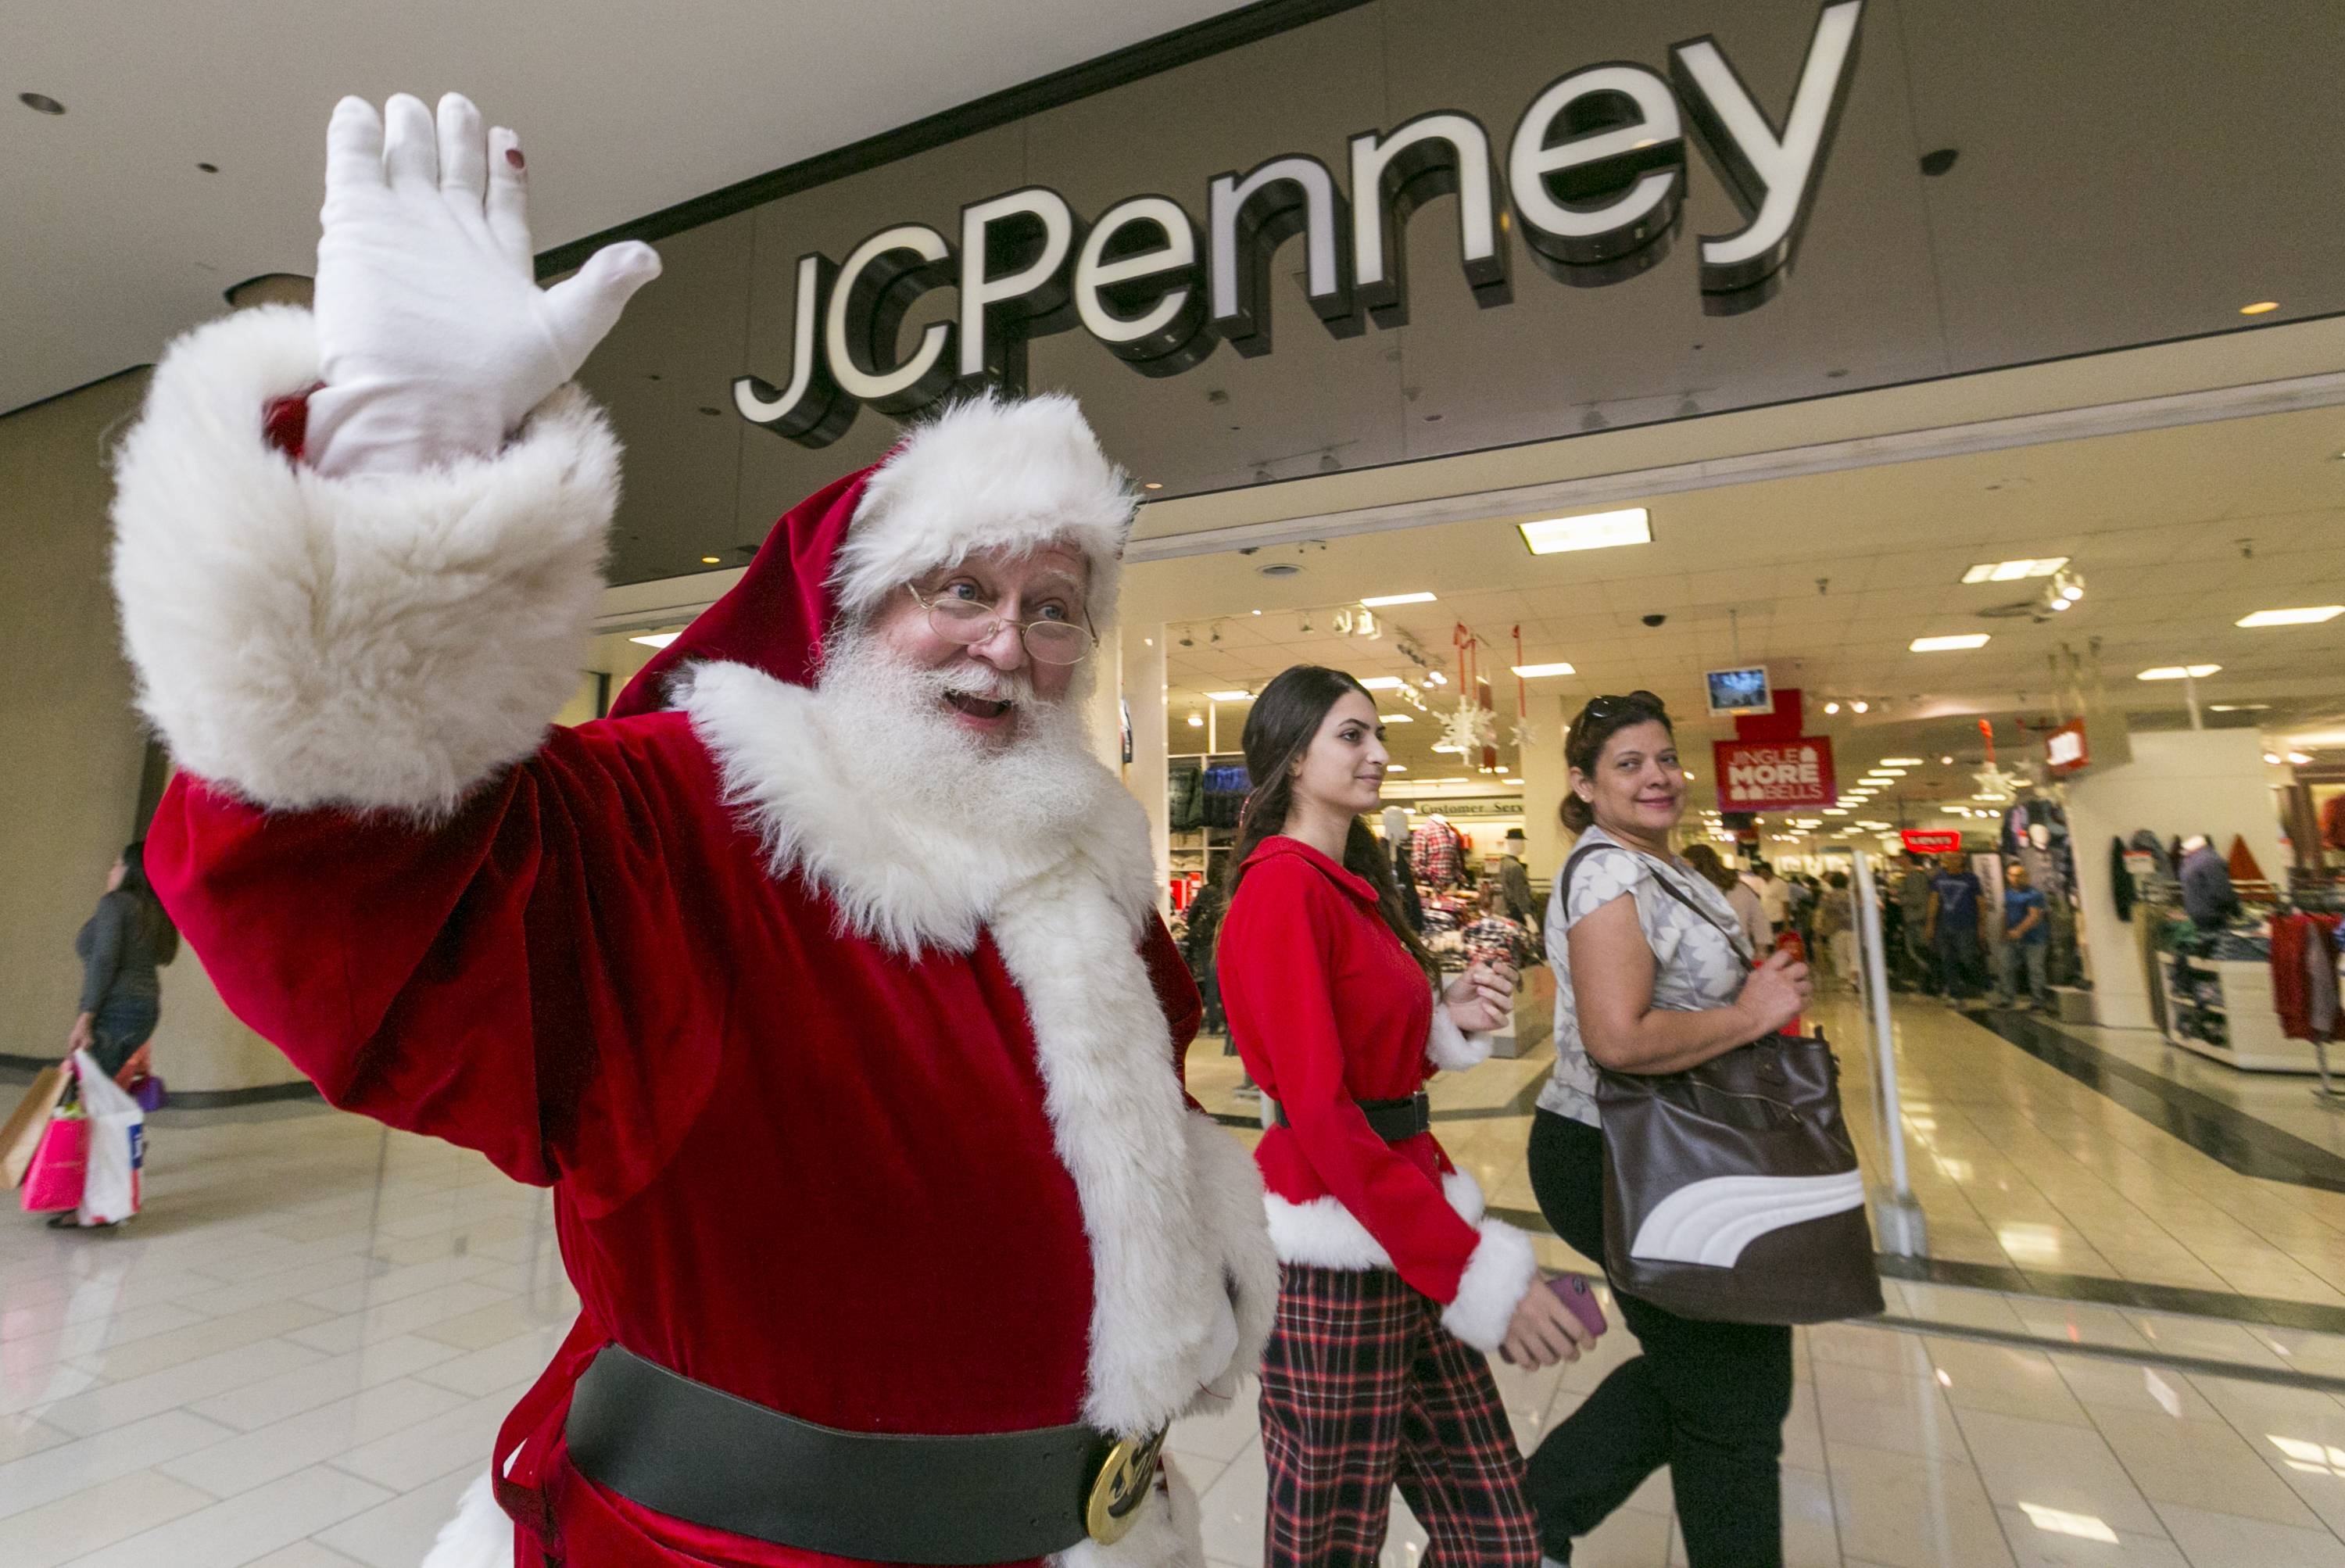 J.C. Penney is still trying to recover from a botched transformation plan spearheaded by its former CEO Ron Johnson that sent its sales in a freefall and resulted in mounting losses.